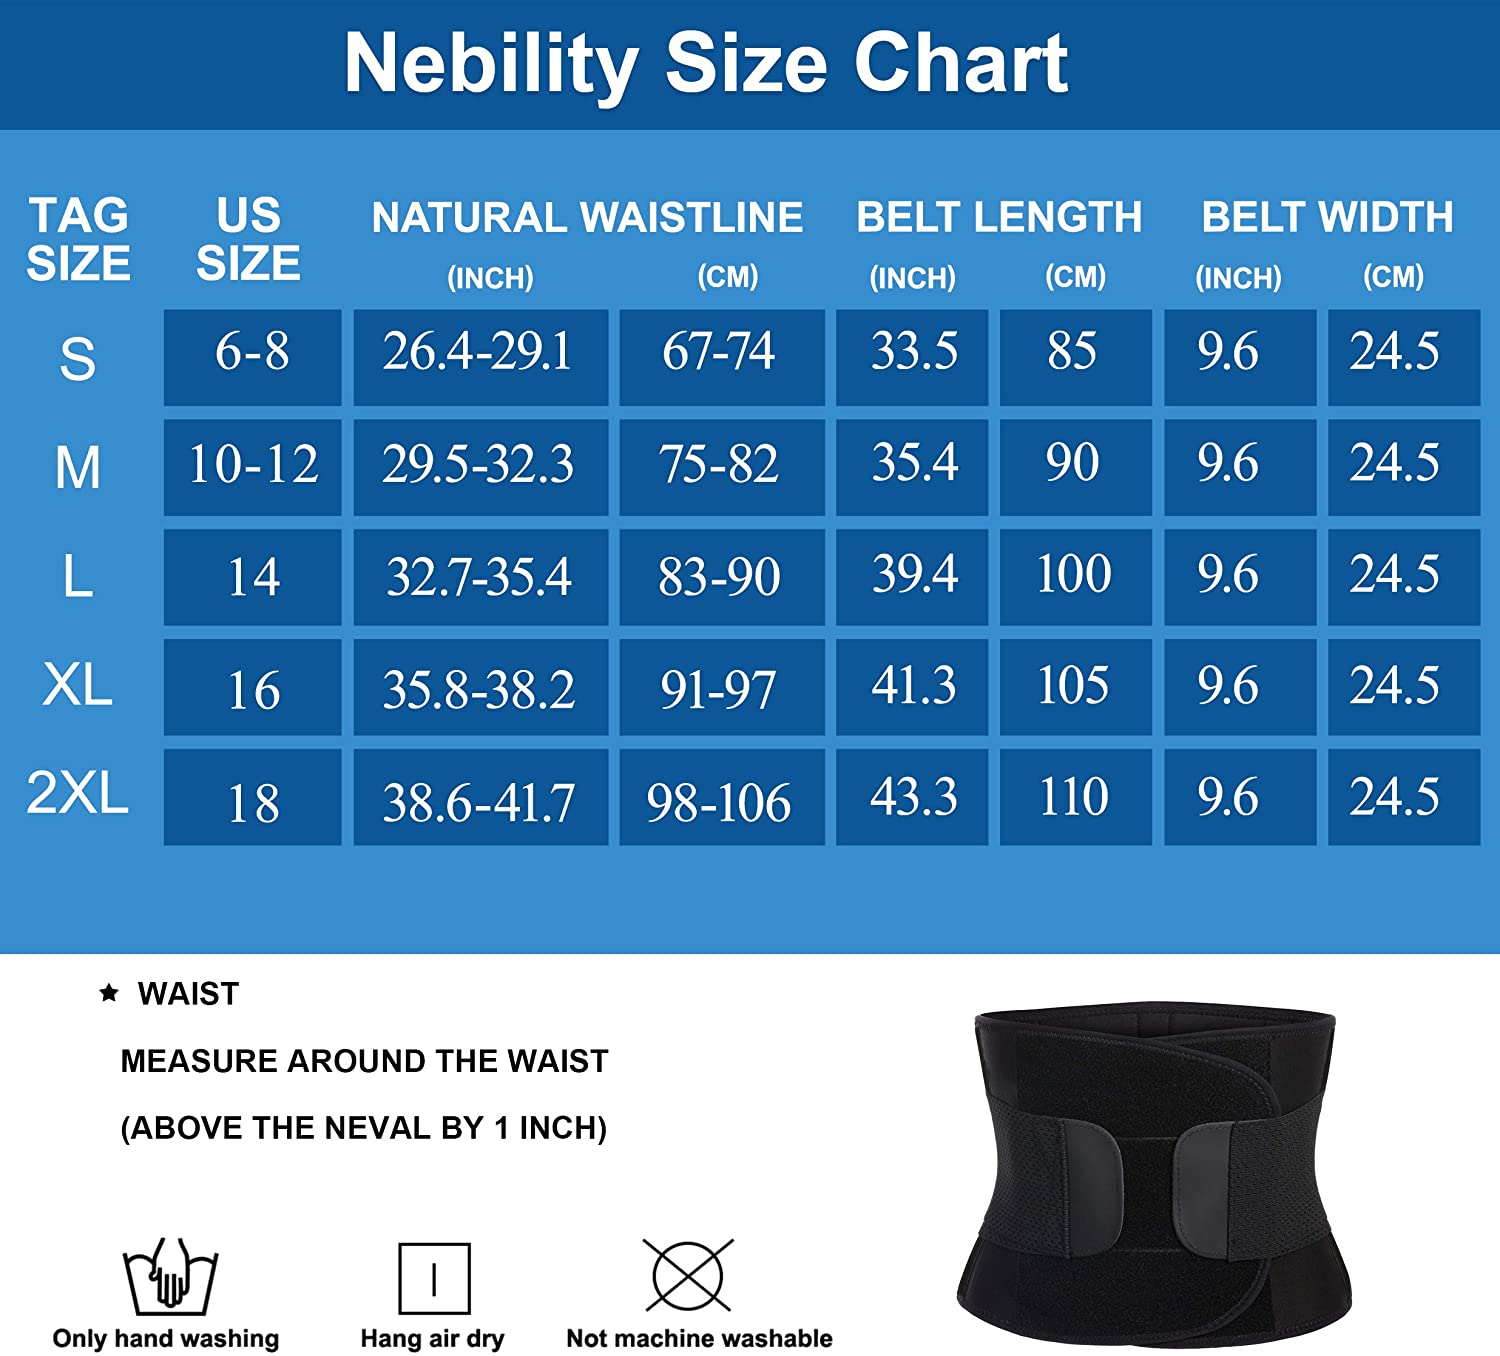 Nebility Women Waist Trainer Belt Tummy Control Waist Cincher Trimmer Sauna Sweat Workout Girdle Slim Belly Band